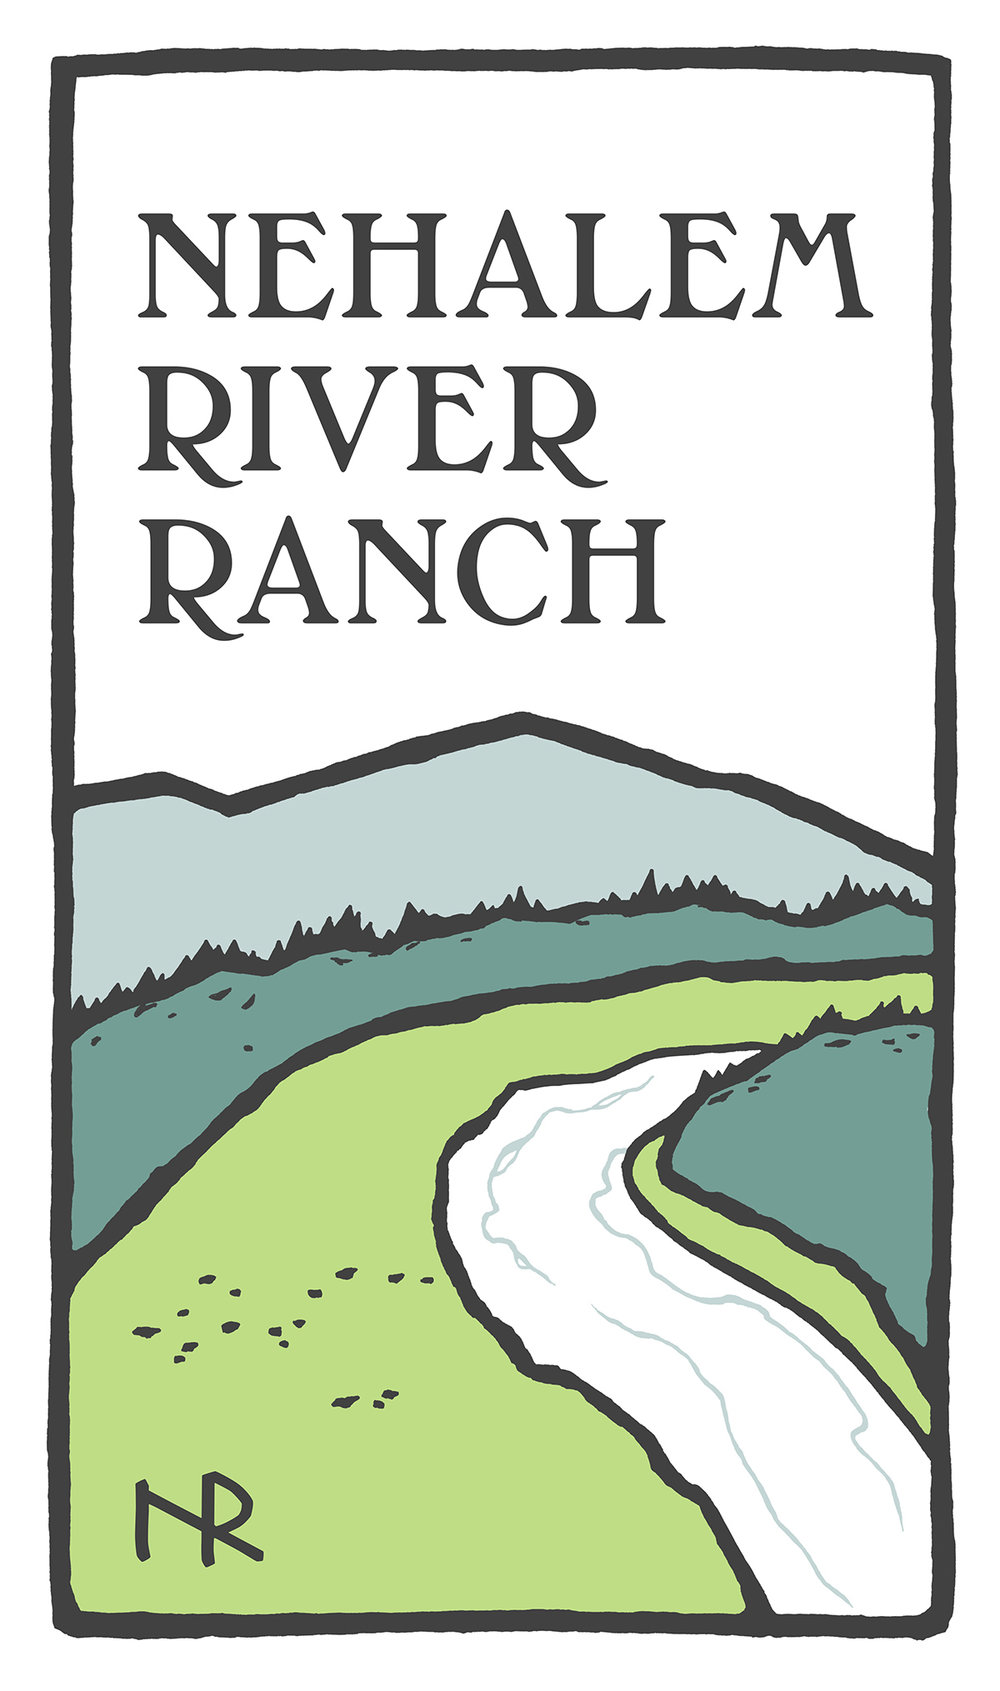 Nehalem_River_Ranch_Logo_tall_color_4x6in.jpg